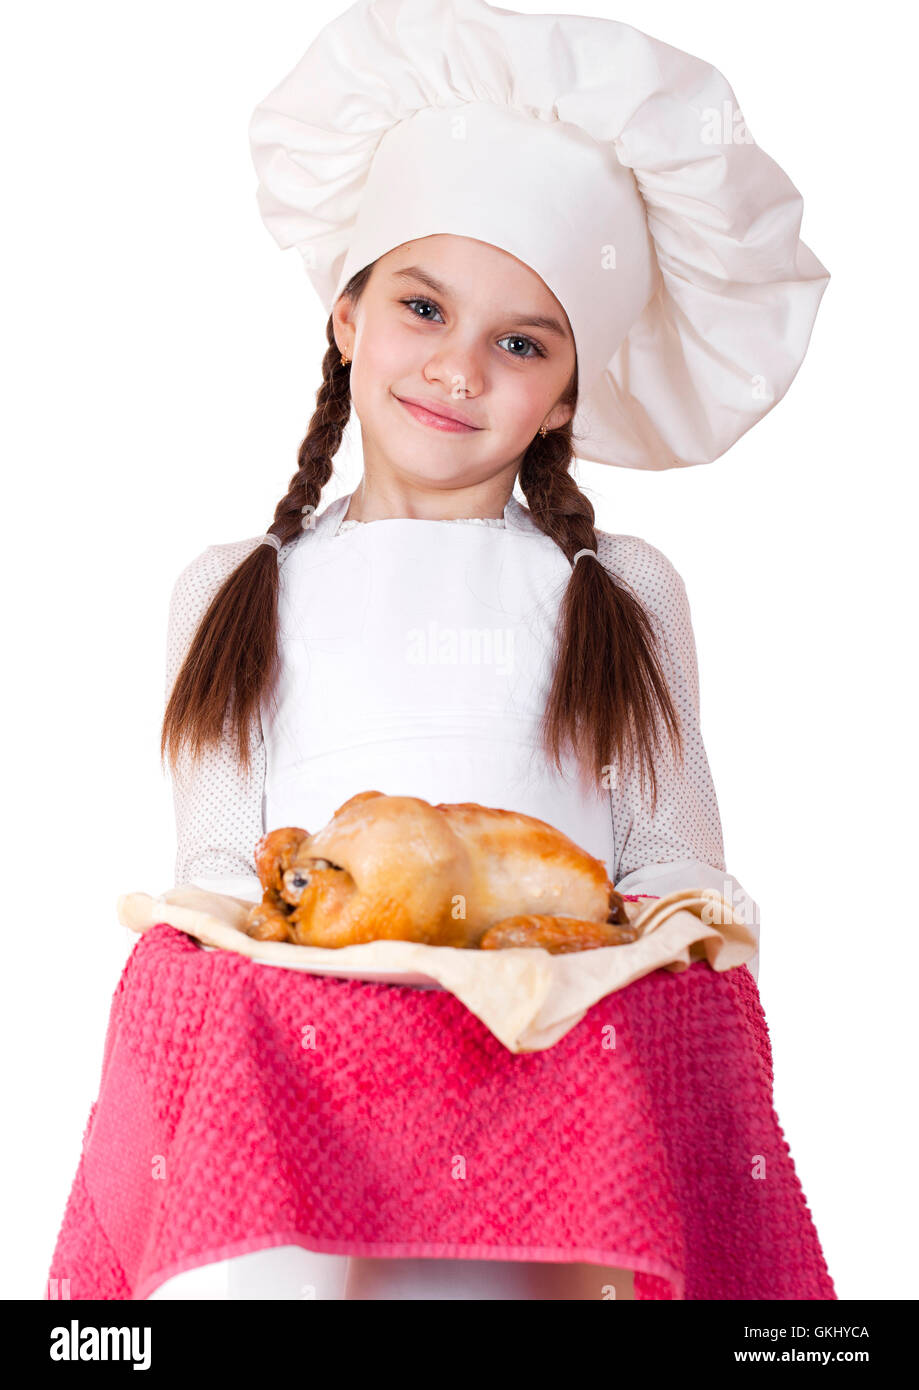 White apron girl - Little Girl In A White Apron Holds On A Plate Of Fried Chicken Isolated On White Background